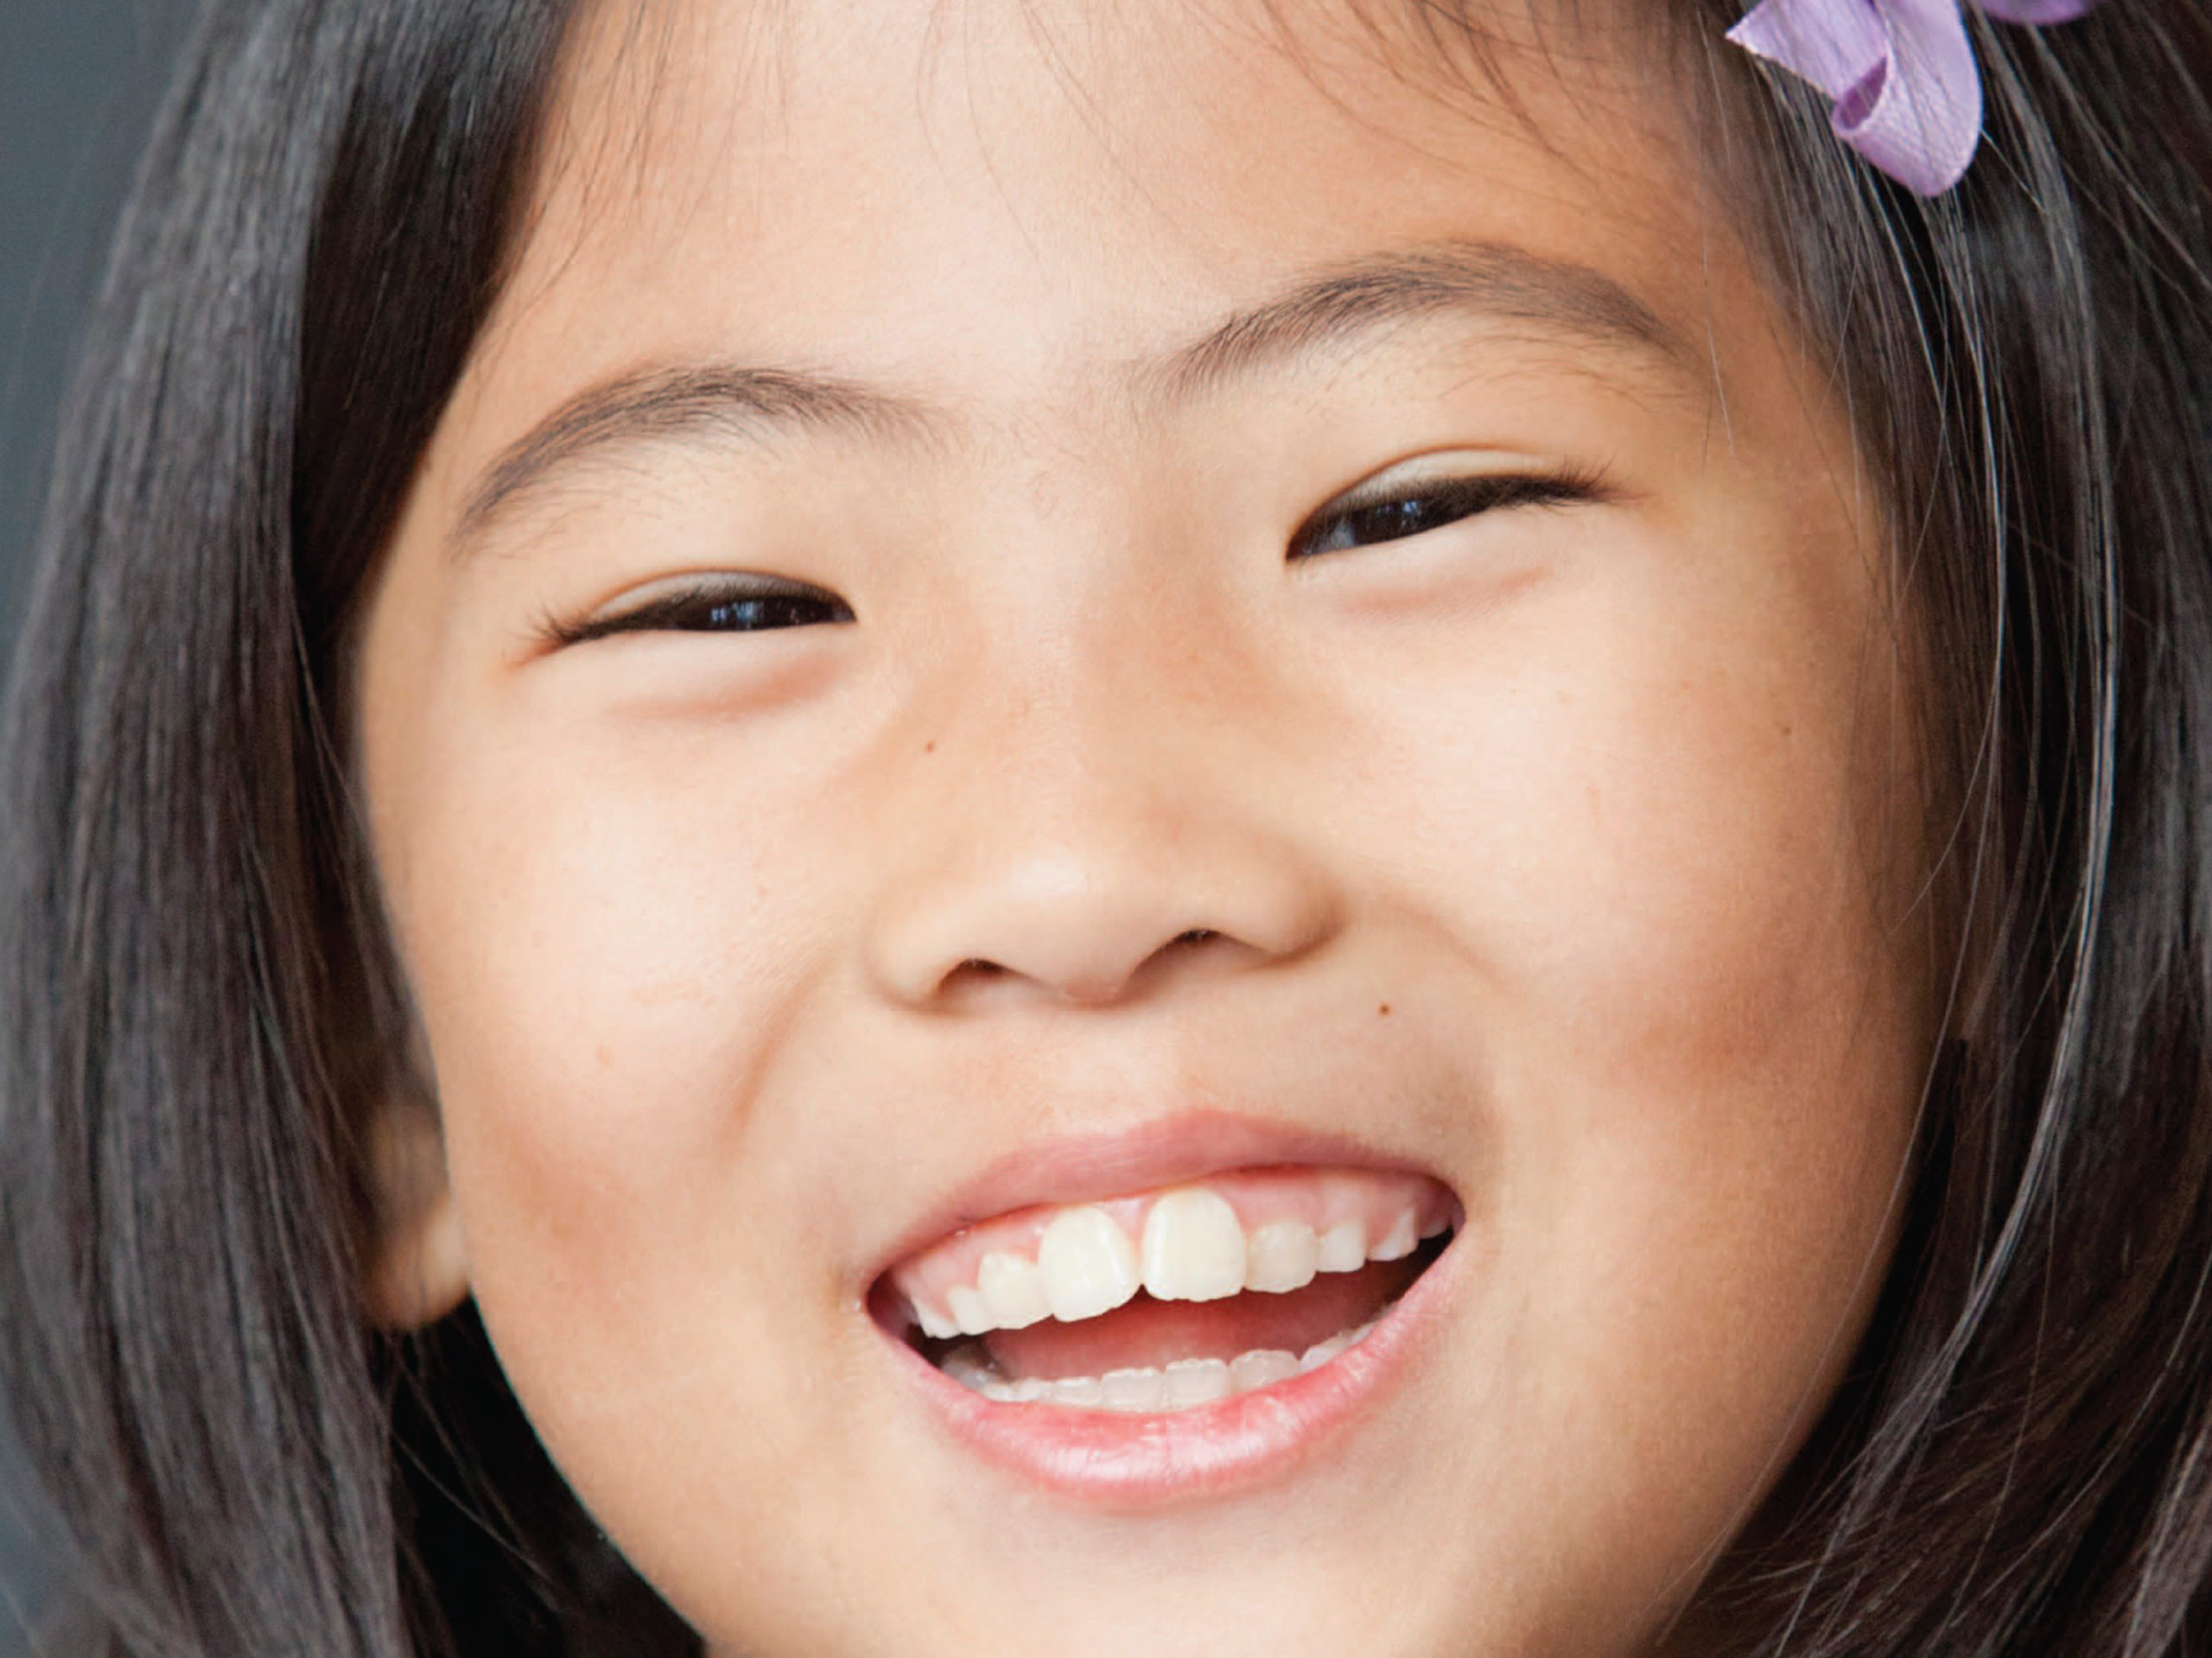 How old should my child be for their first orthodontic visit?